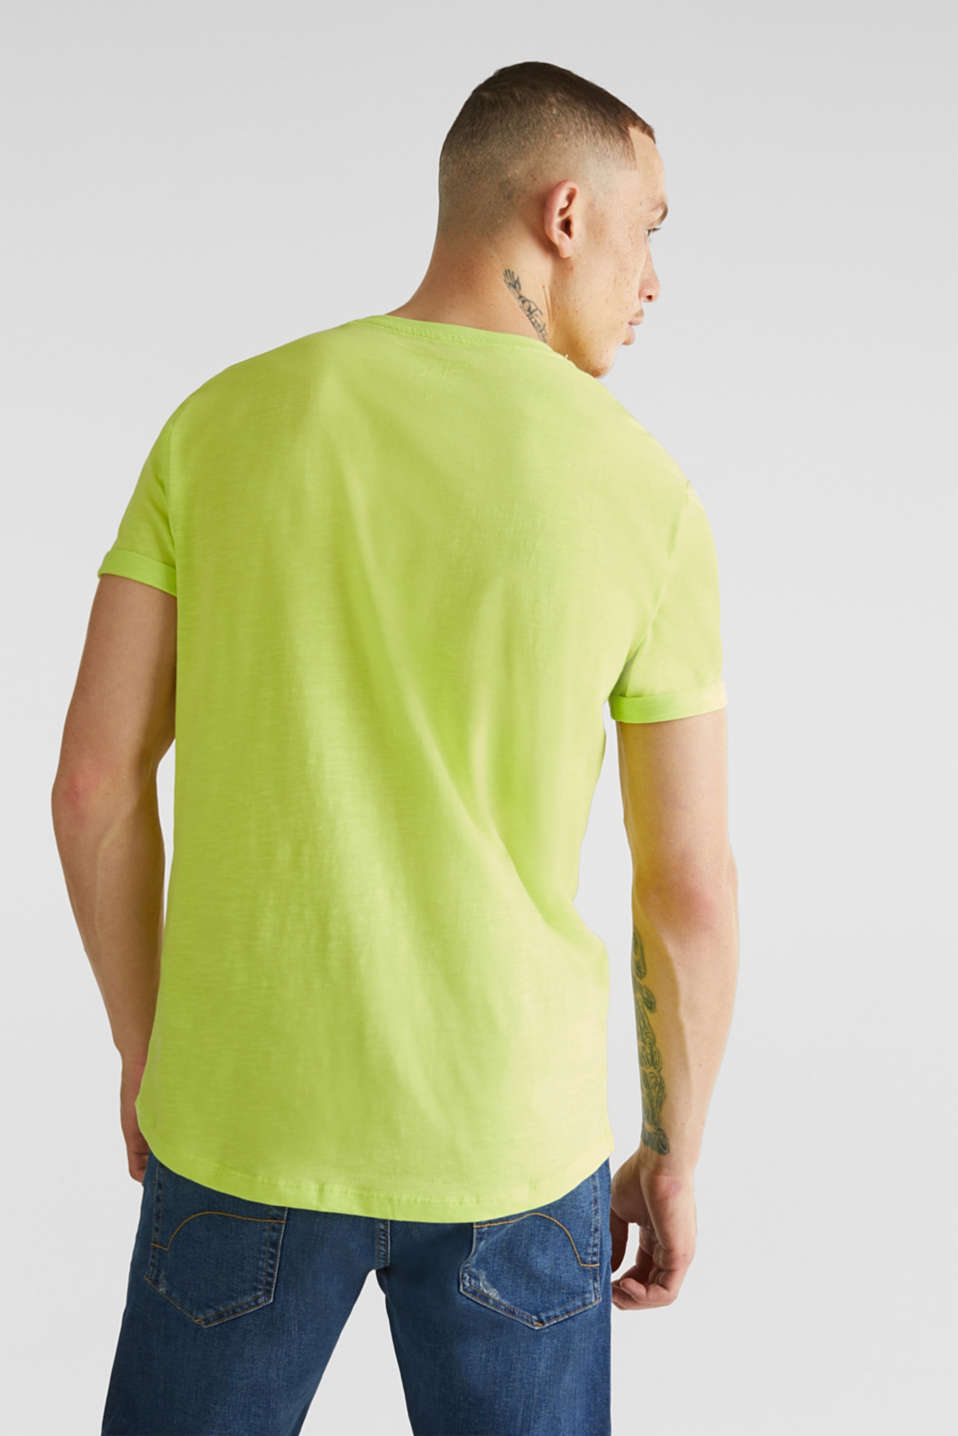 Slub jersey T-shirt in 100% cotton, BRIGHT YELLOW, detail image number 3